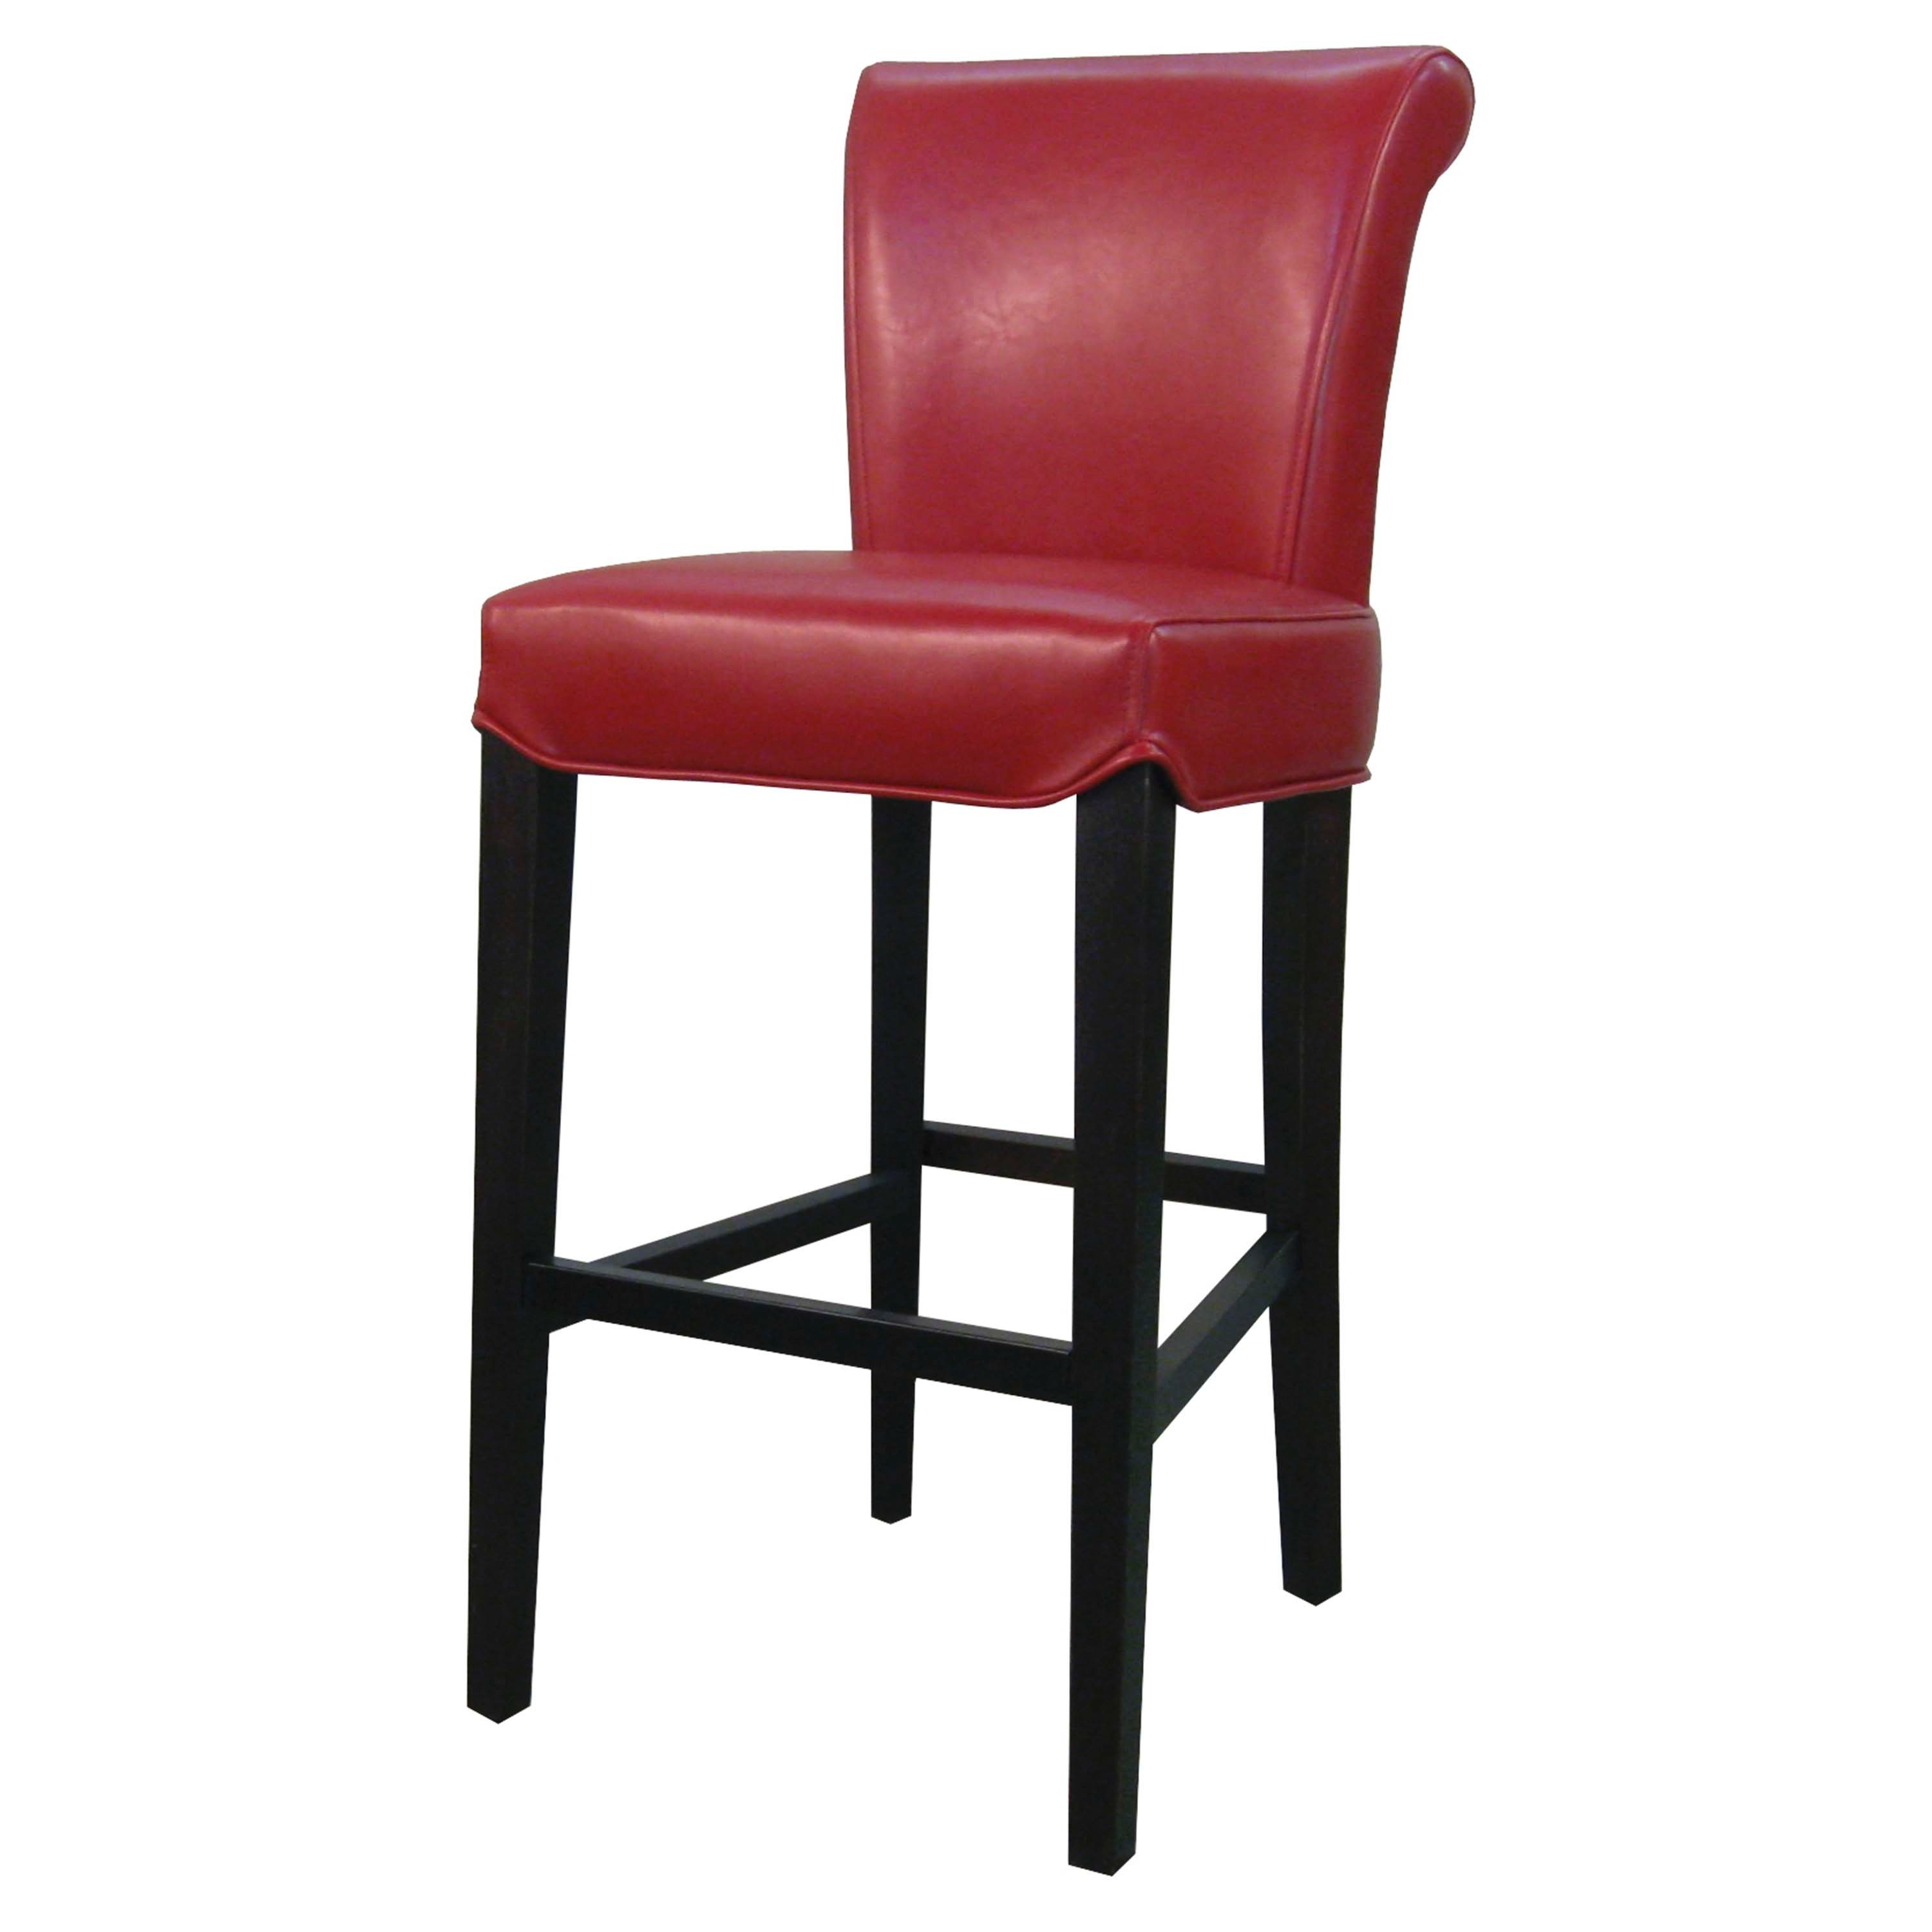 Stupendous Sierra Leather Bar Stool Red Cubitt Leather Counter Gmtry Best Dining Table And Chair Ideas Images Gmtryco